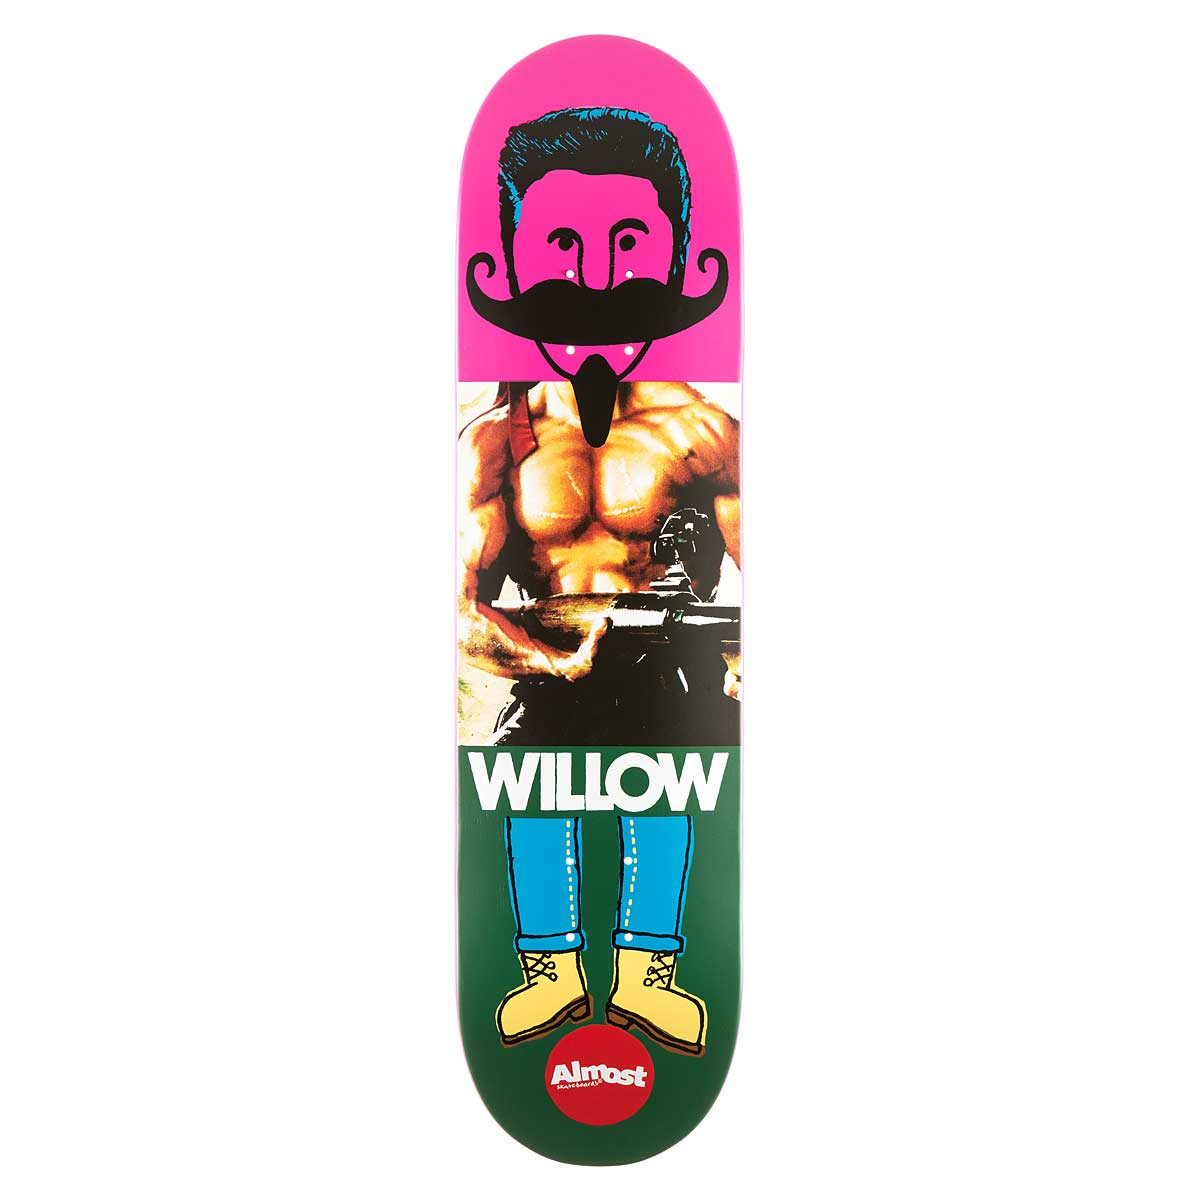 Almost Skateboard Deck Willow 8 Remix Dude Impact Light FREE POST FREE GRIP New